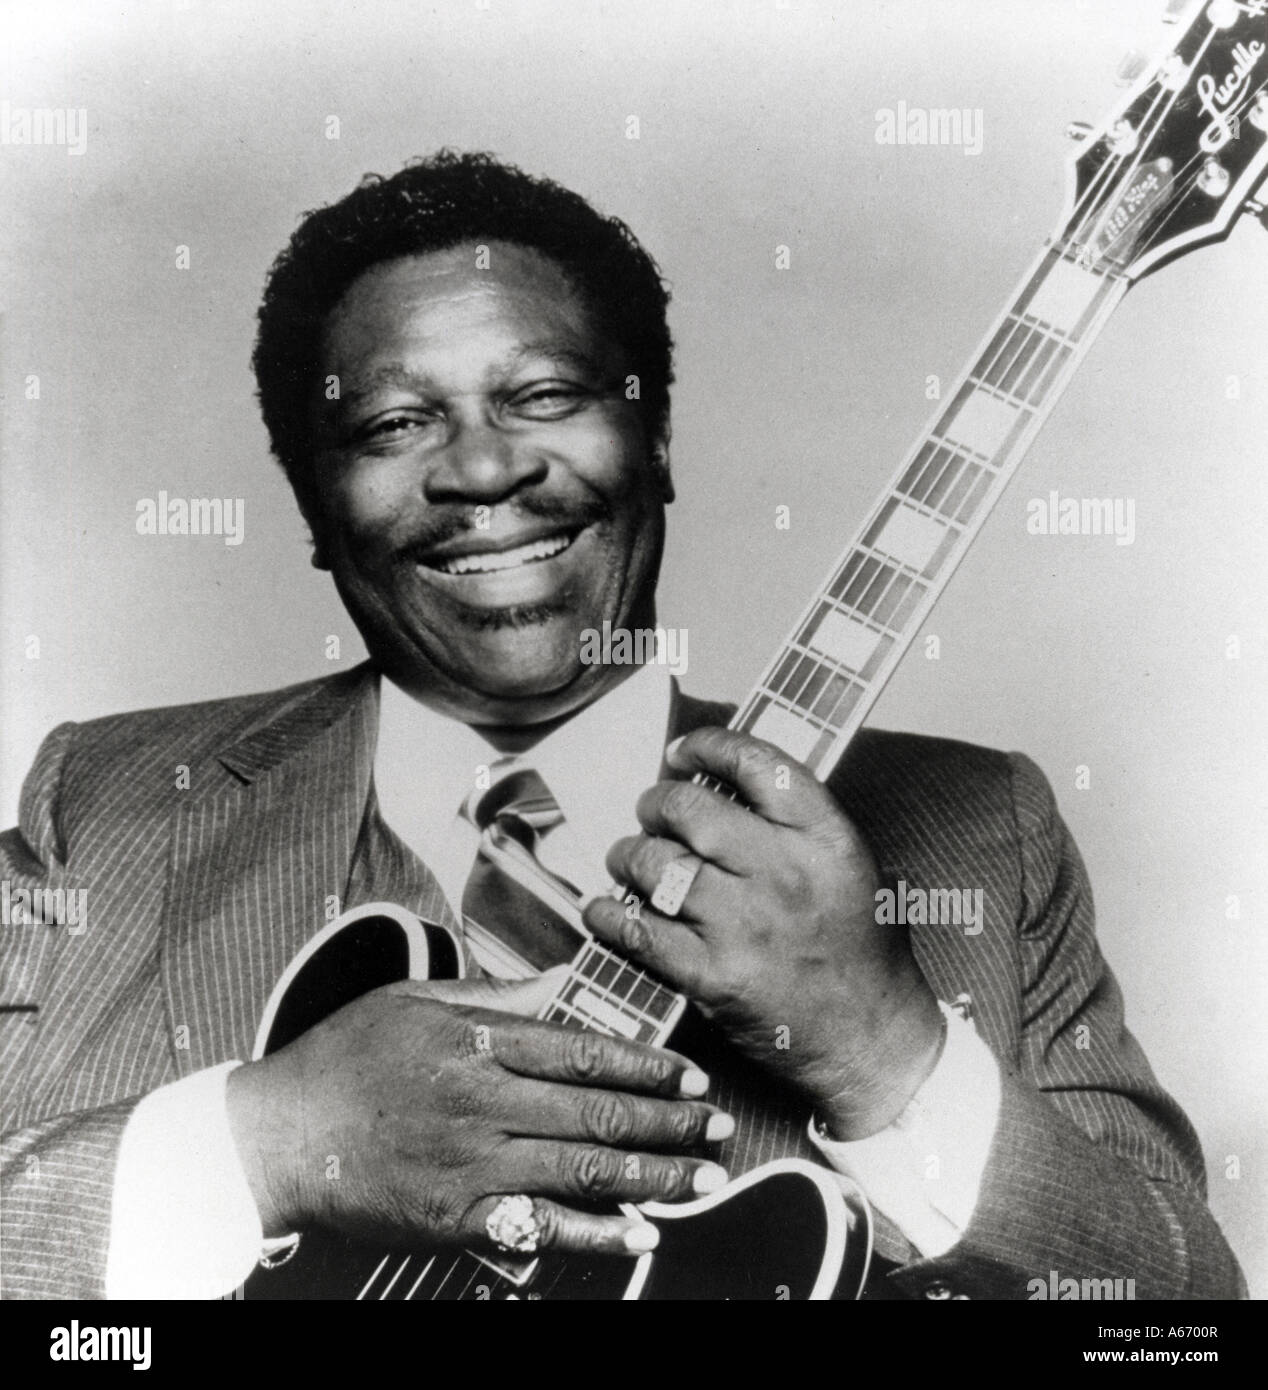 B B KING US Blues guitarist born 1925 with one of his trademark Lucille guitars - Stock Image